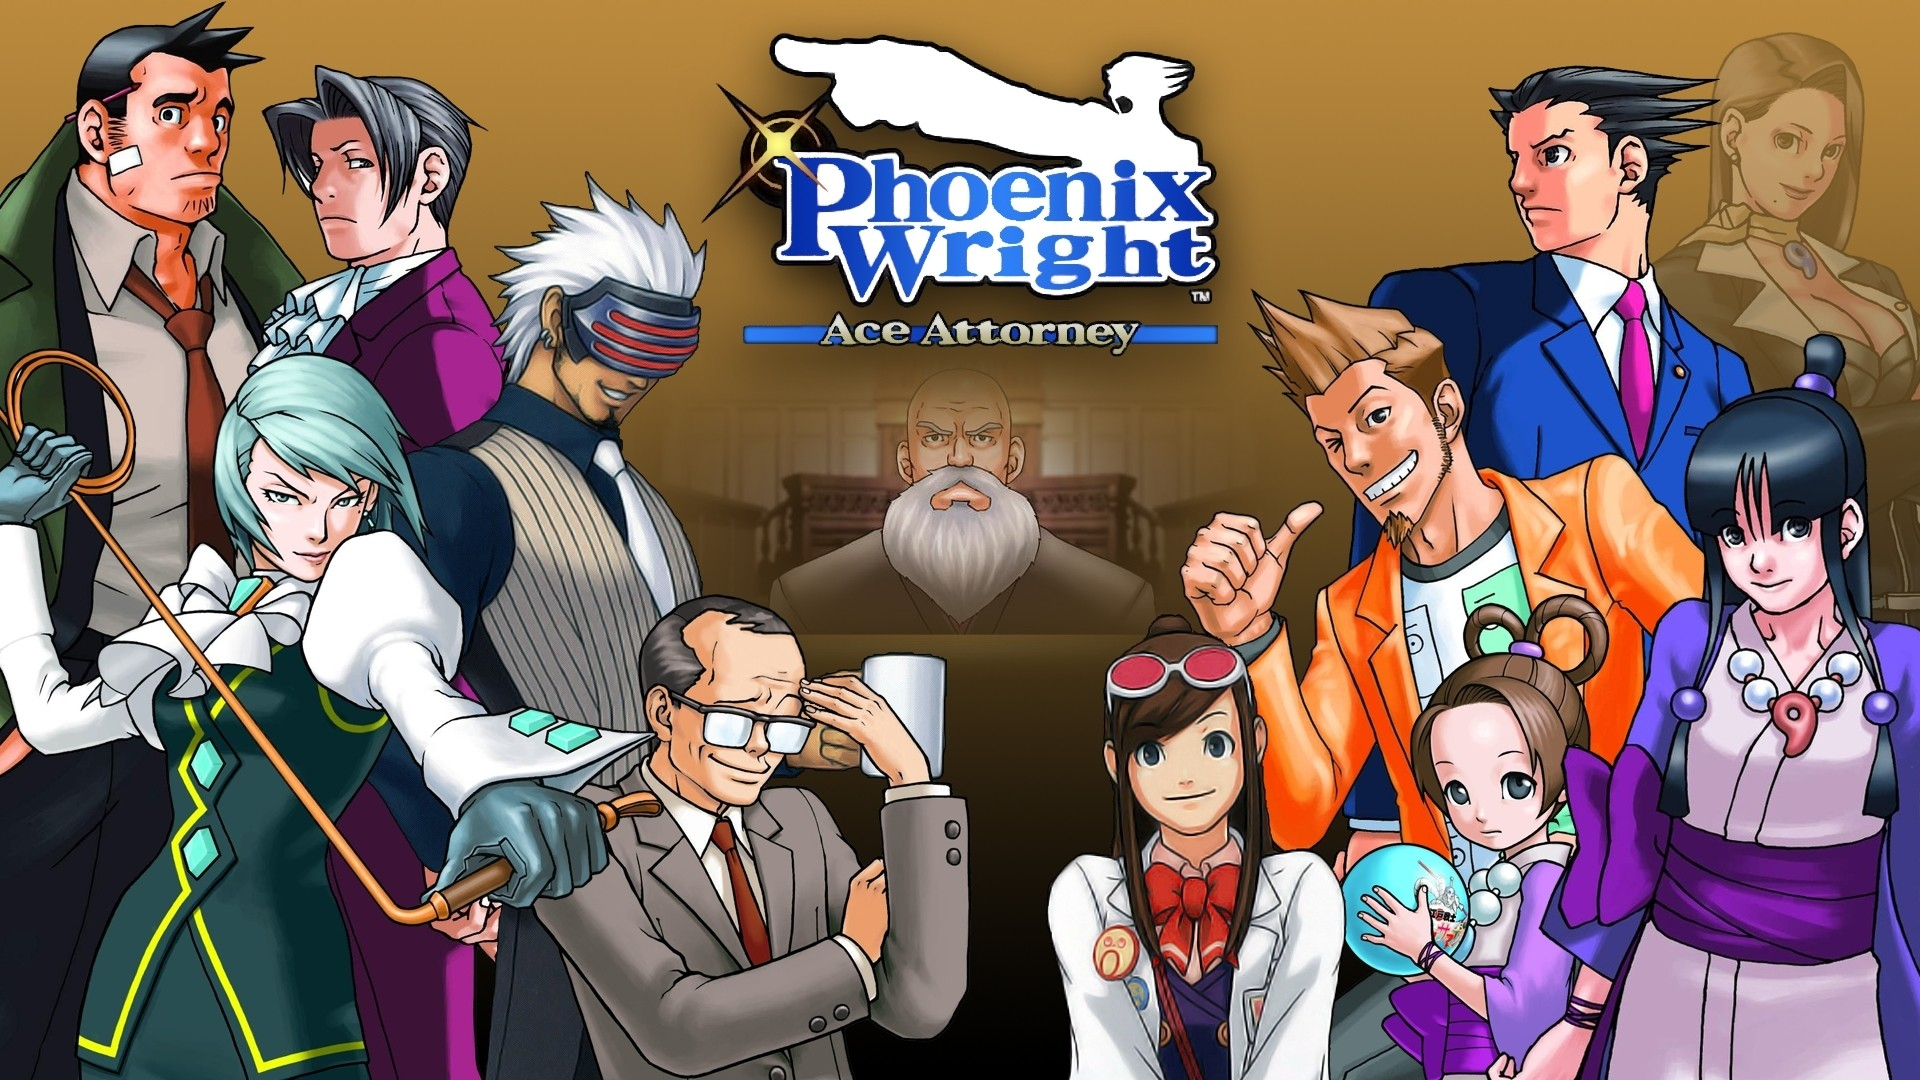 Phoenix Wright images Wallpaper 2 HD wallpaper and background photos